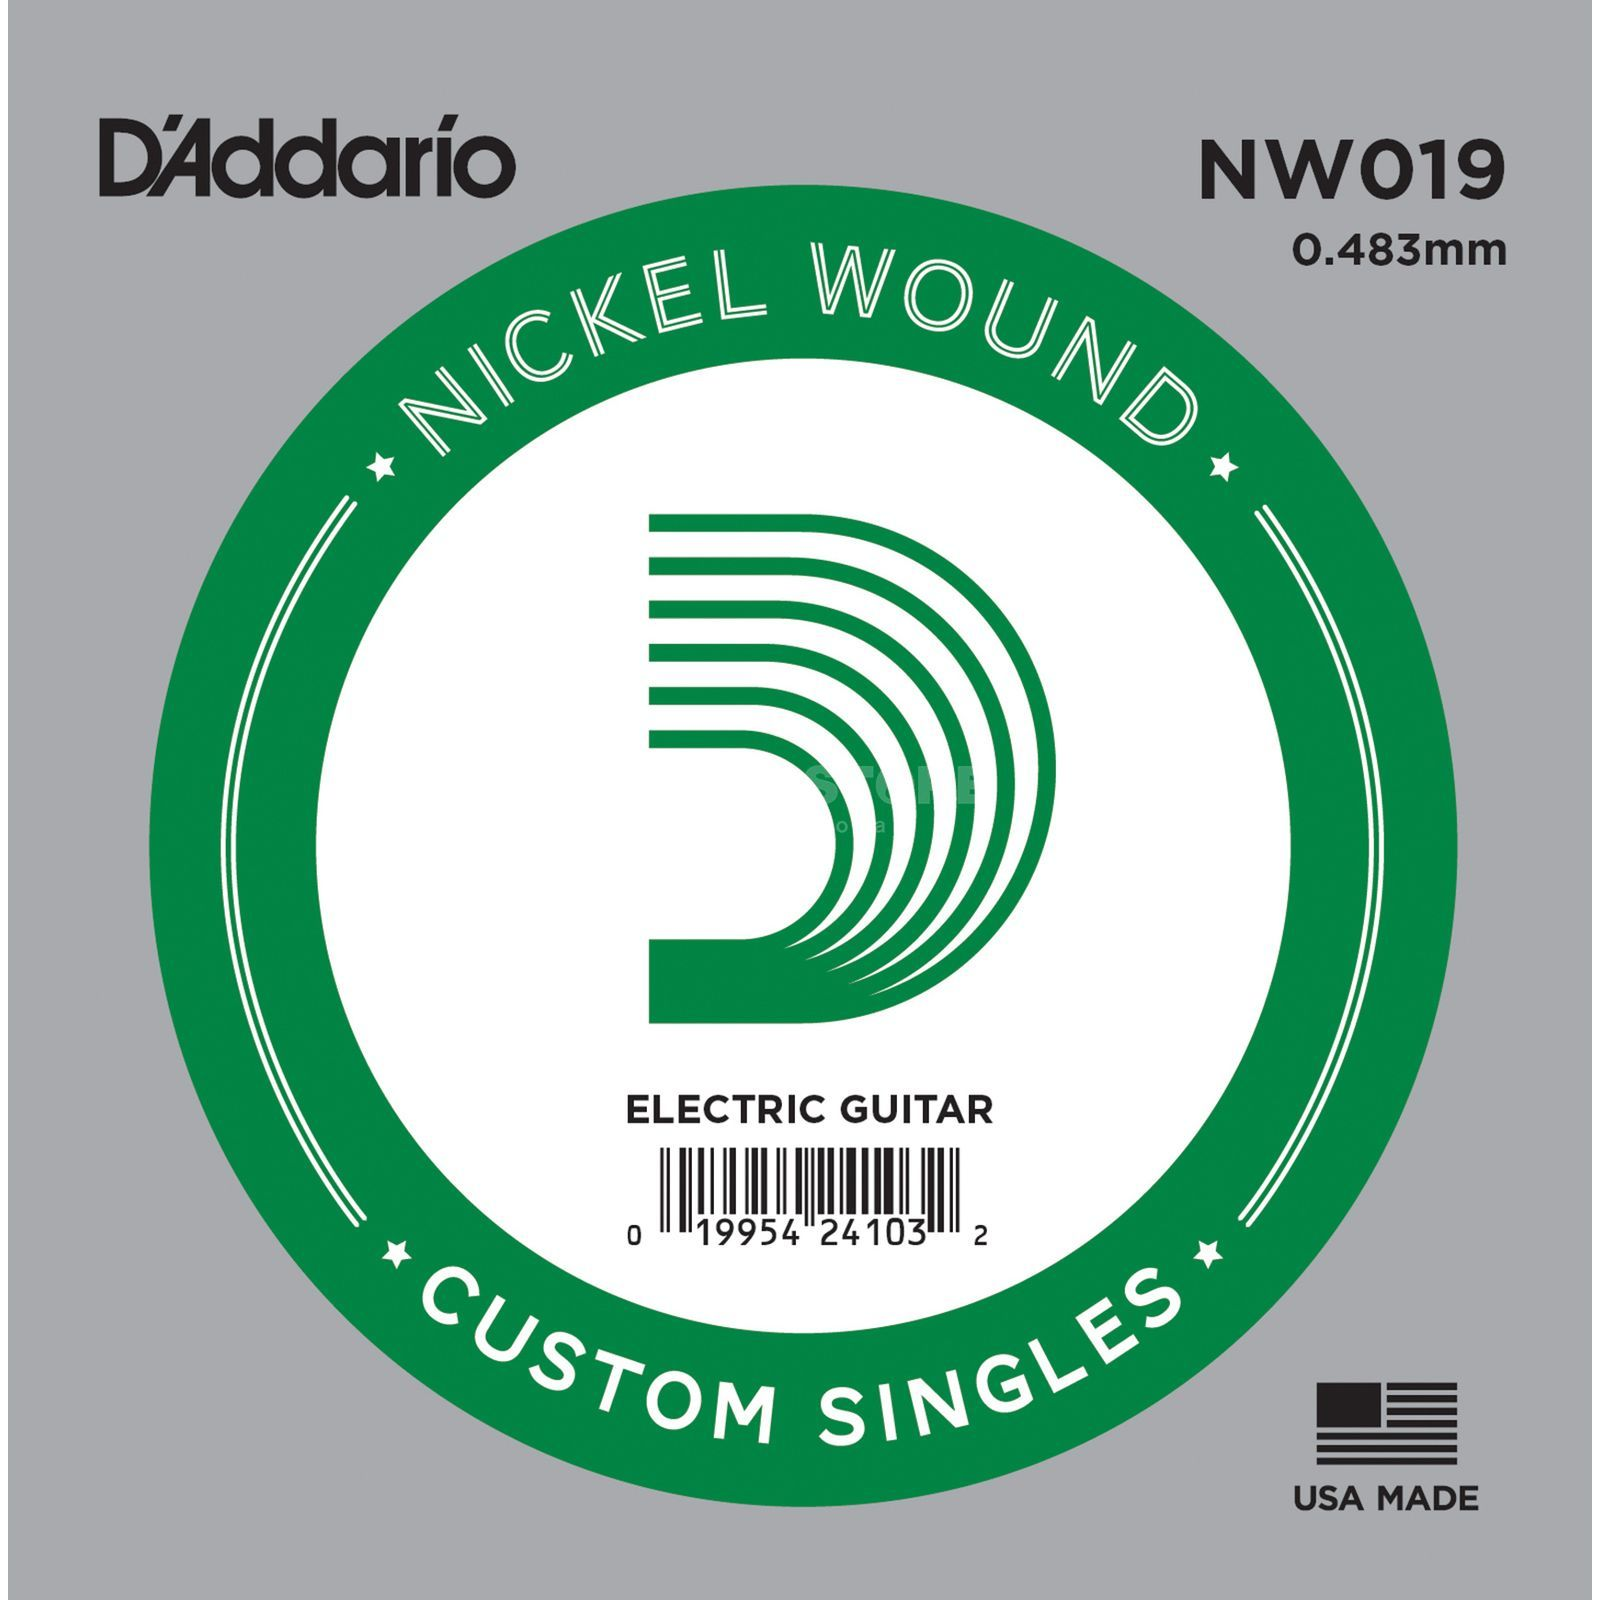 D'Addario Single String NW019 Nickelwound Immagine prodotto